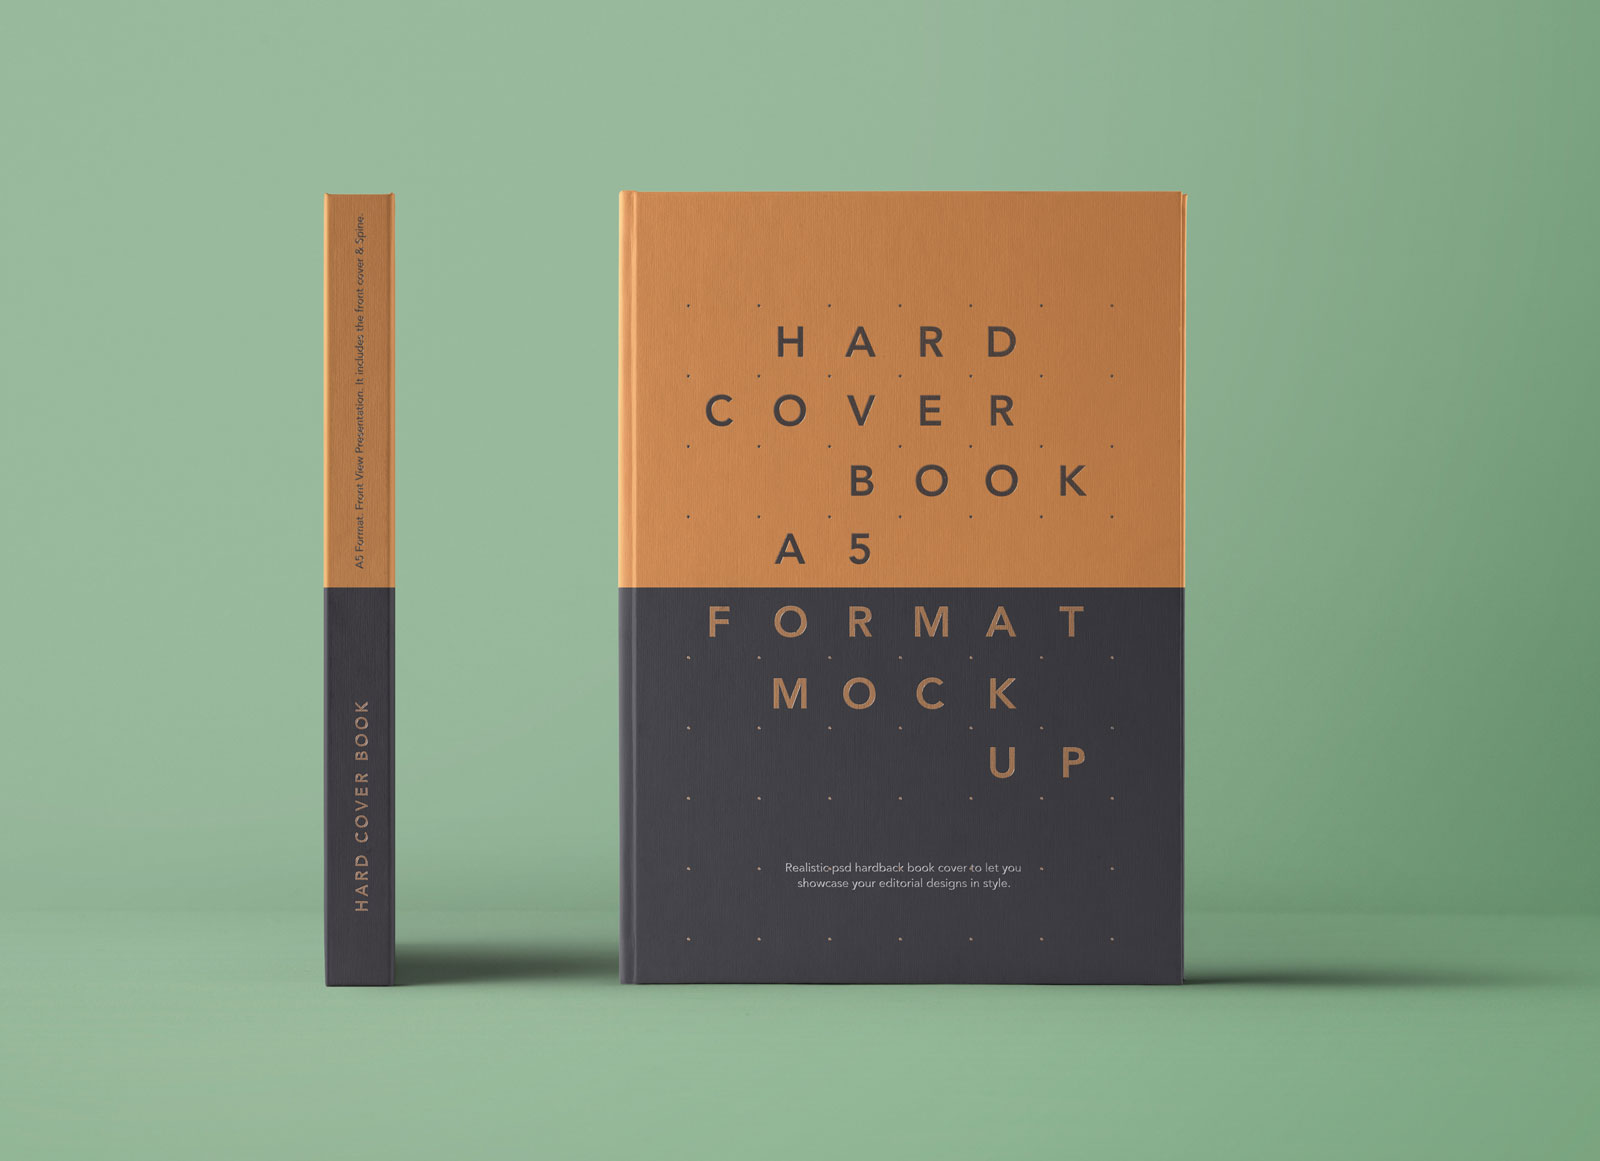 How To Make A Book Cover App : Free a hardcover book spine mockup psd good mockups